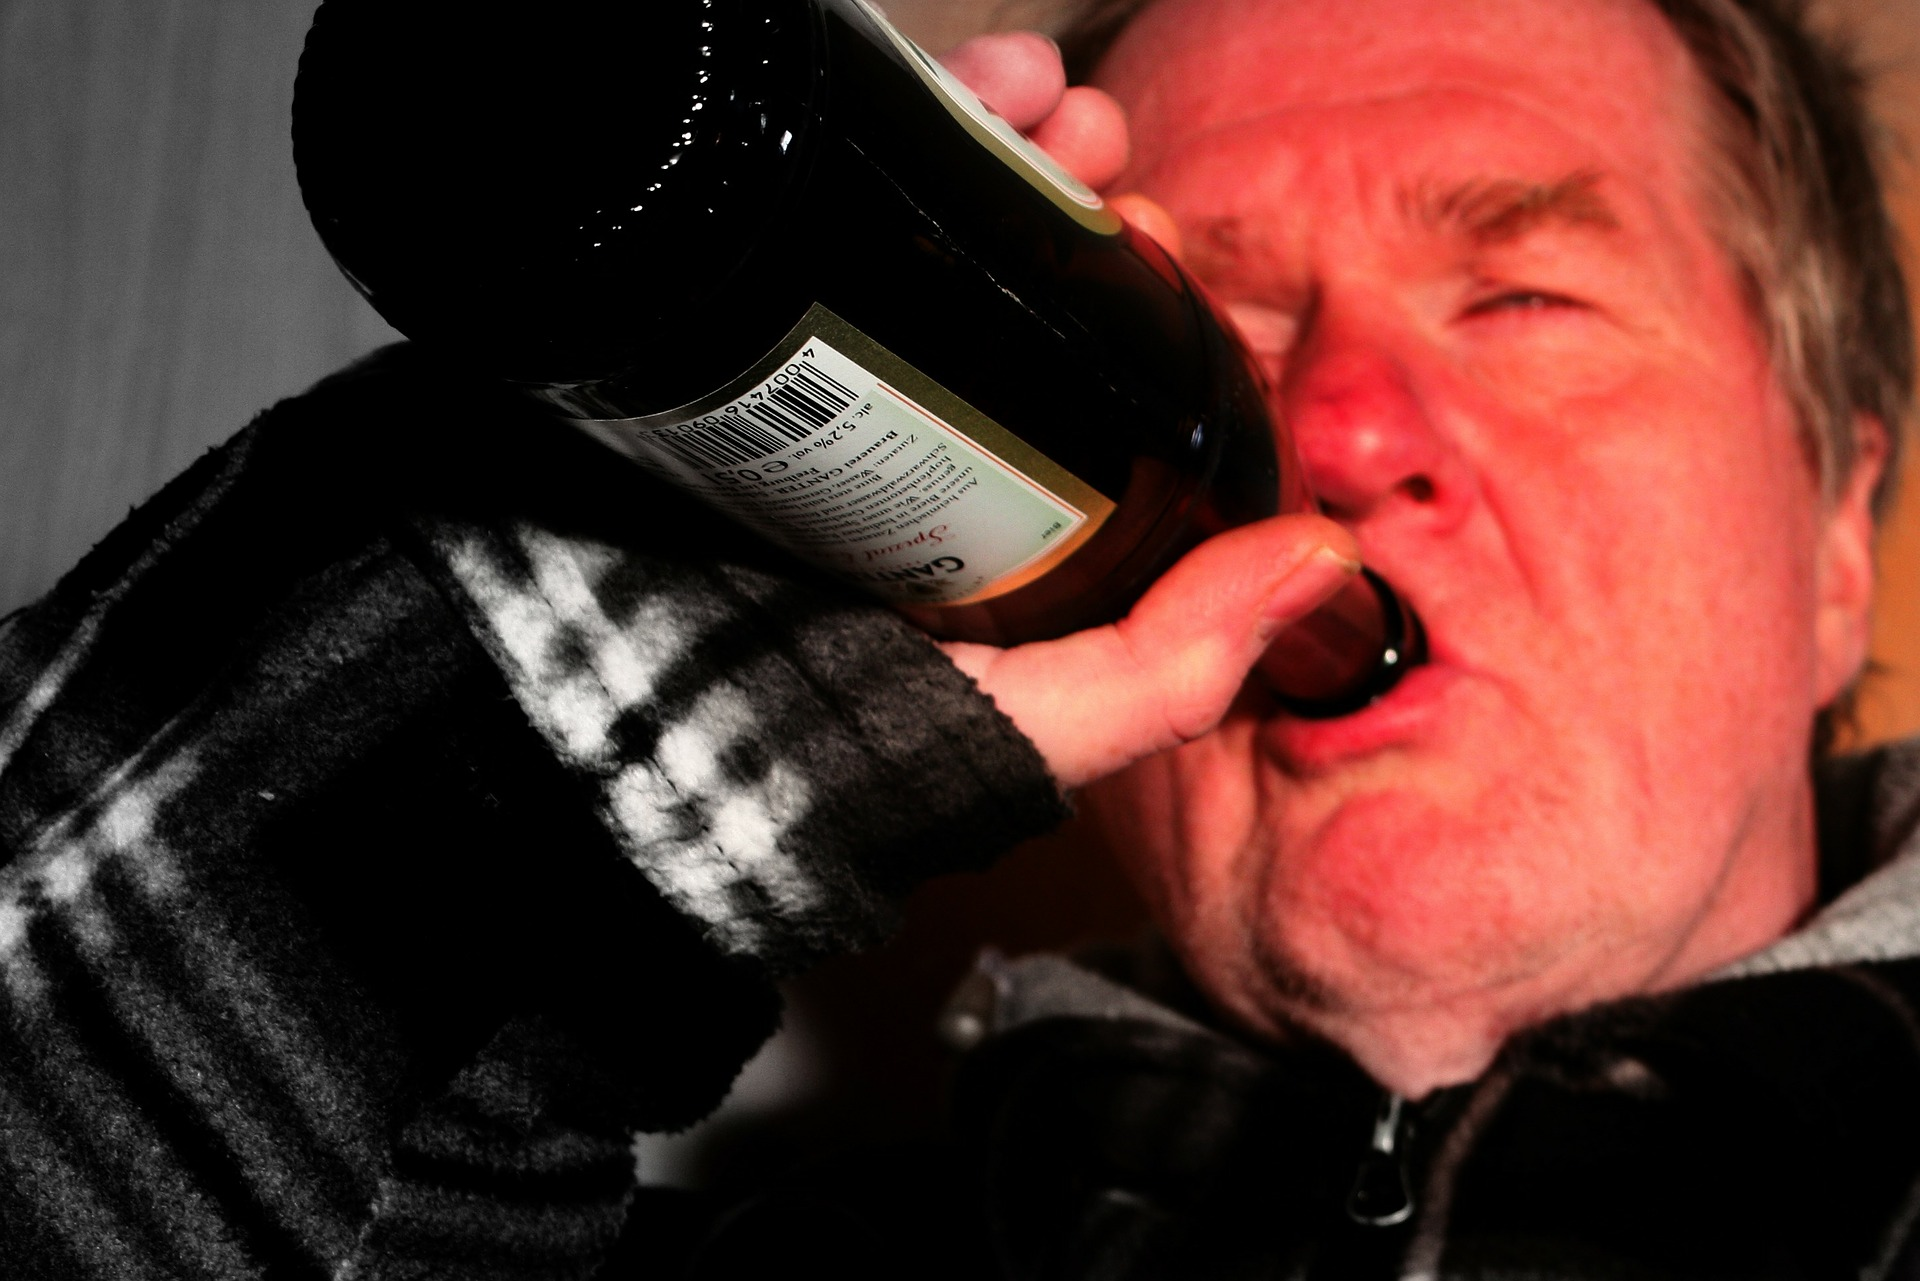 Alcoholic husband - wrecks your life - hits the bottle again and again